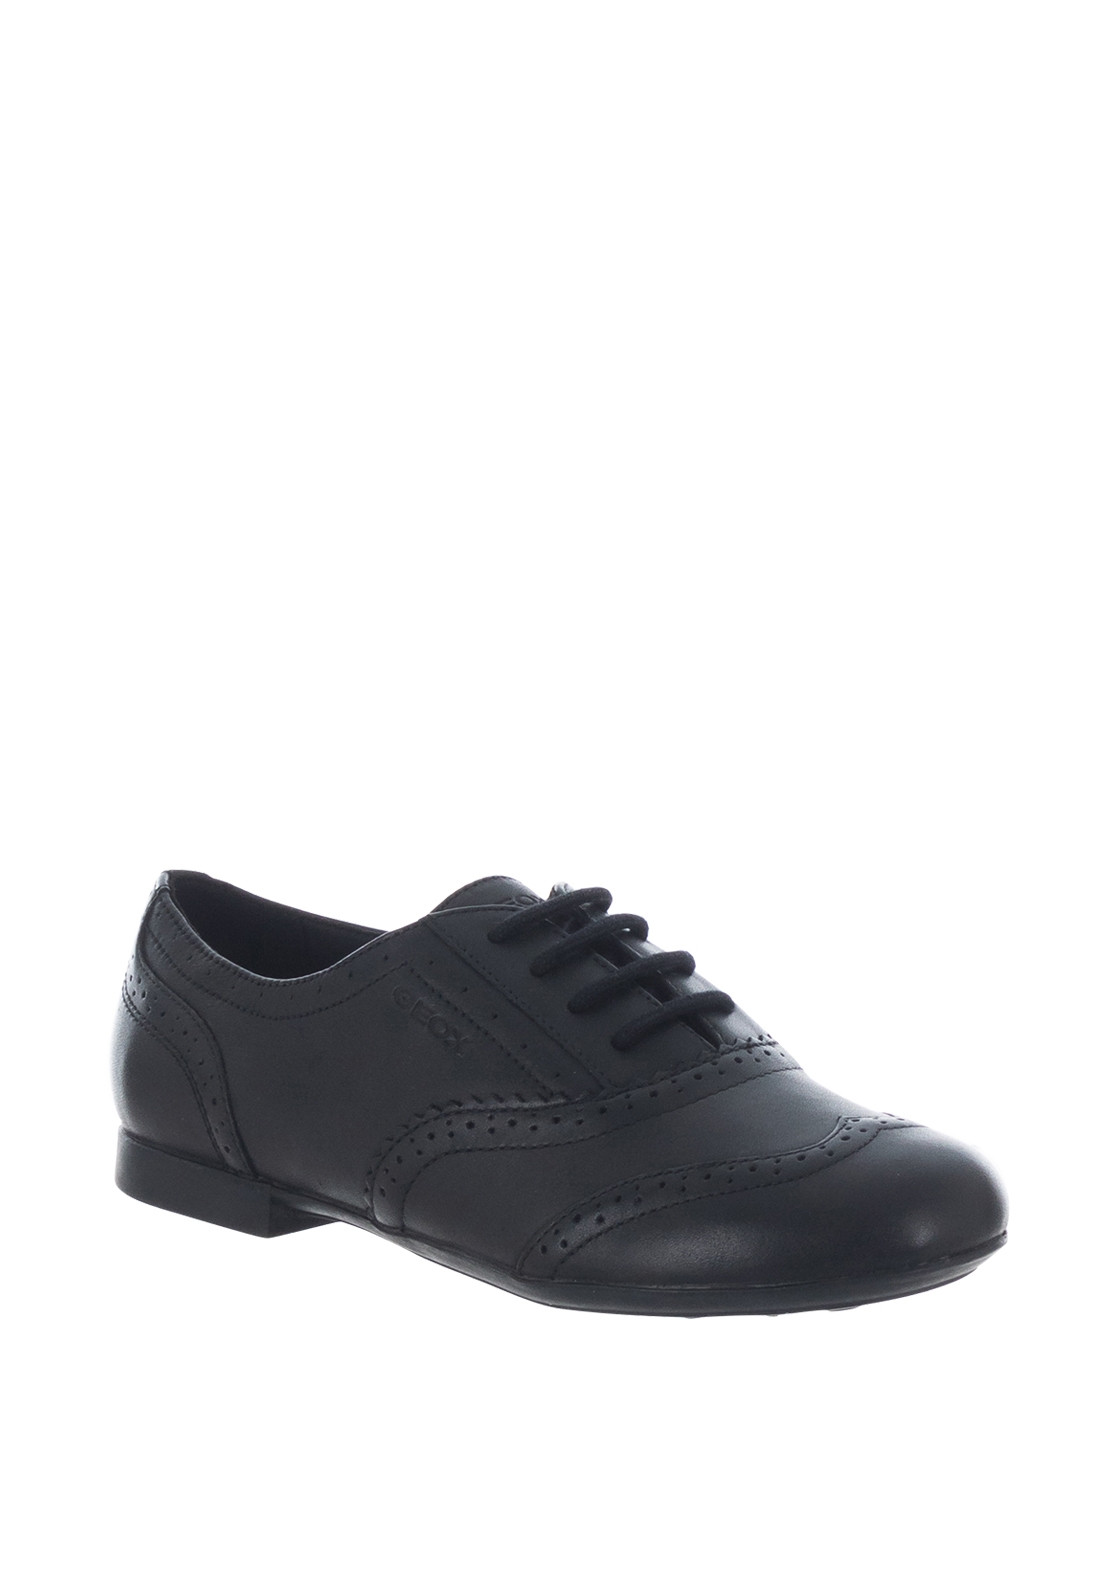 buying new the latest pre order Geox Girls Leather Brogue School Shoes, Black